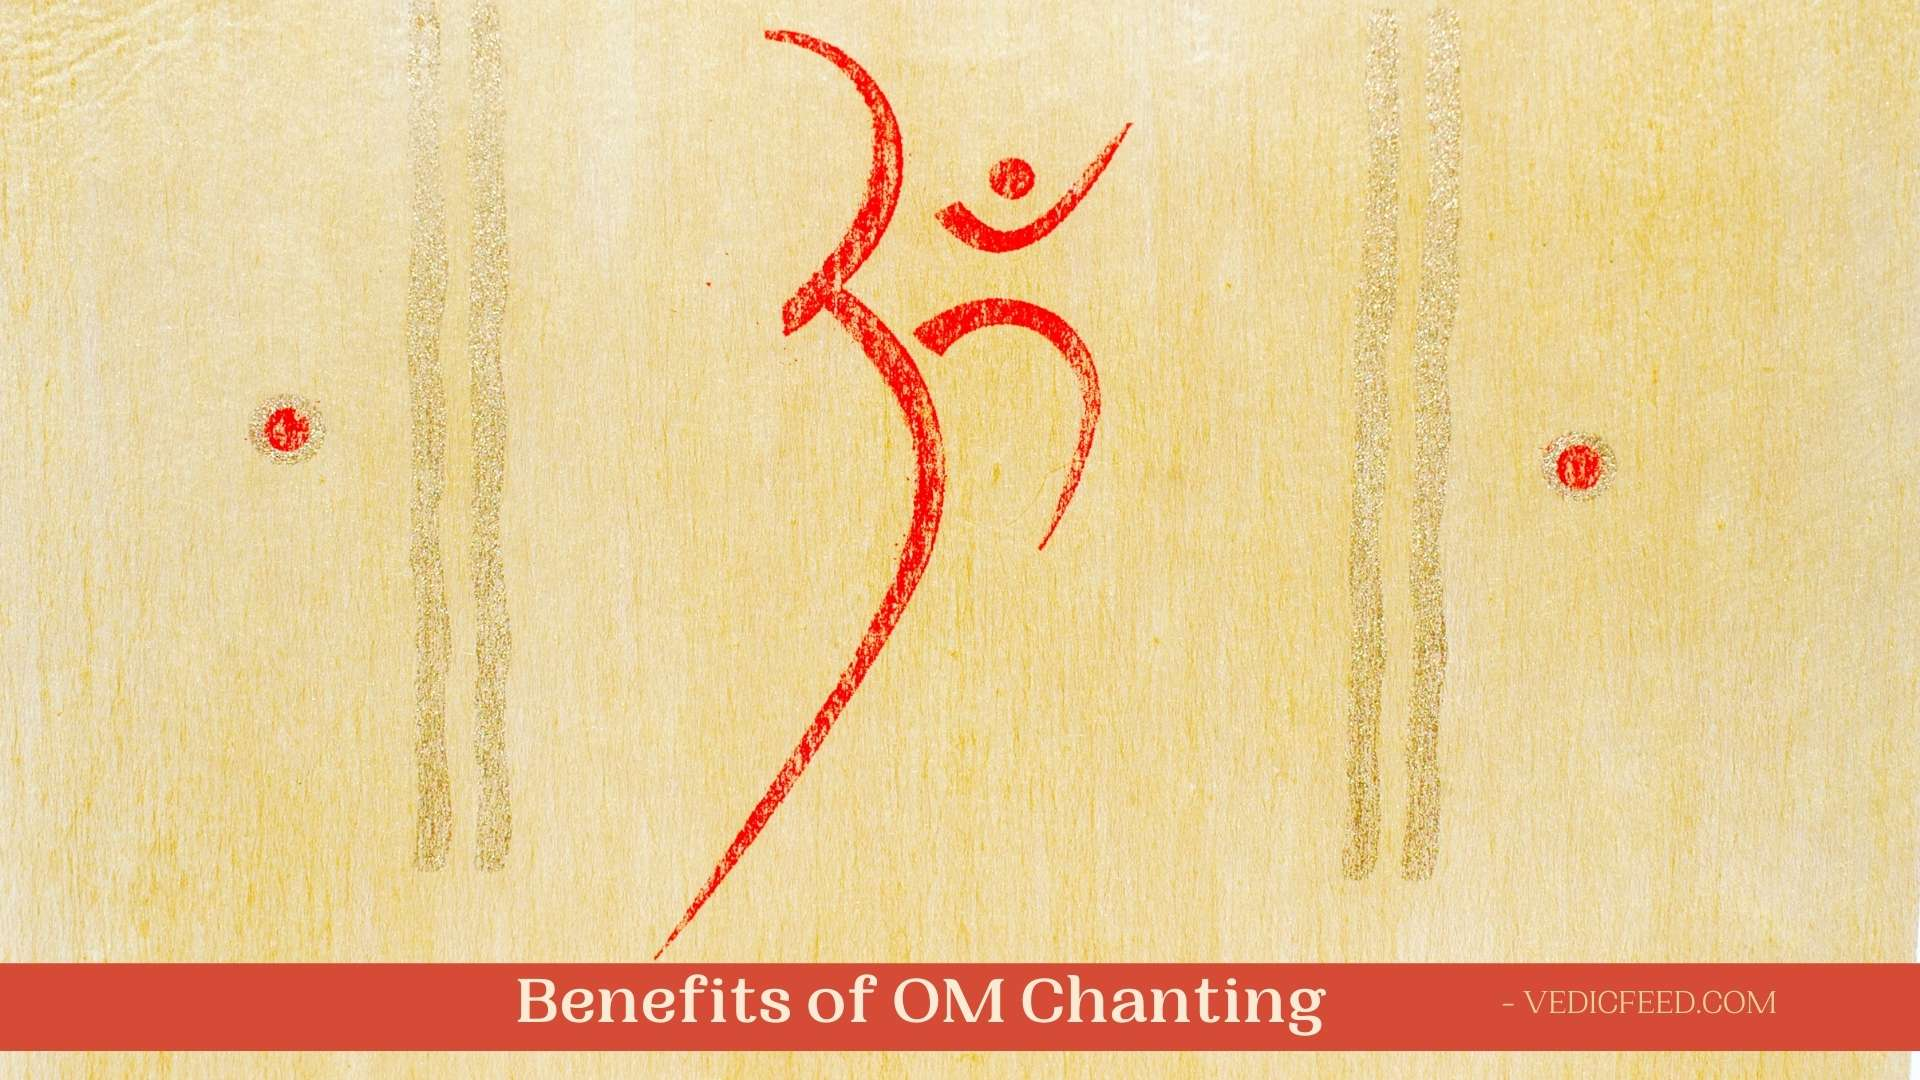 Benefits of Chanting OM Mantra